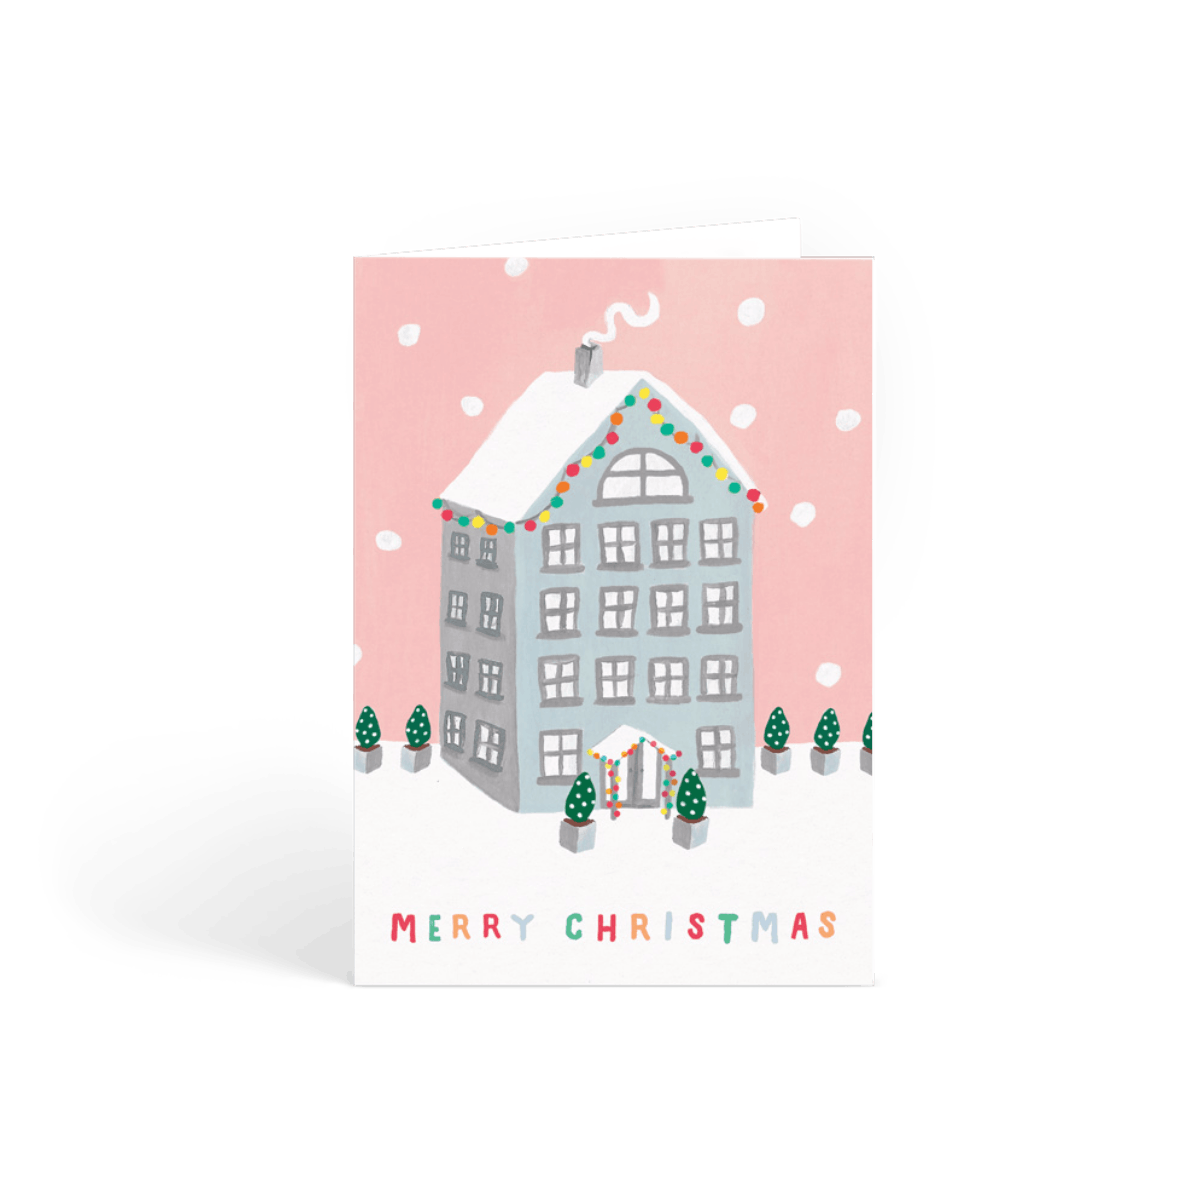 Https%3a%2f%2fwww.papier.com%2fproduct image%2f30214%2f2%2fchristmas house 7620 front 1541153493.png?ixlib=rb 1.1